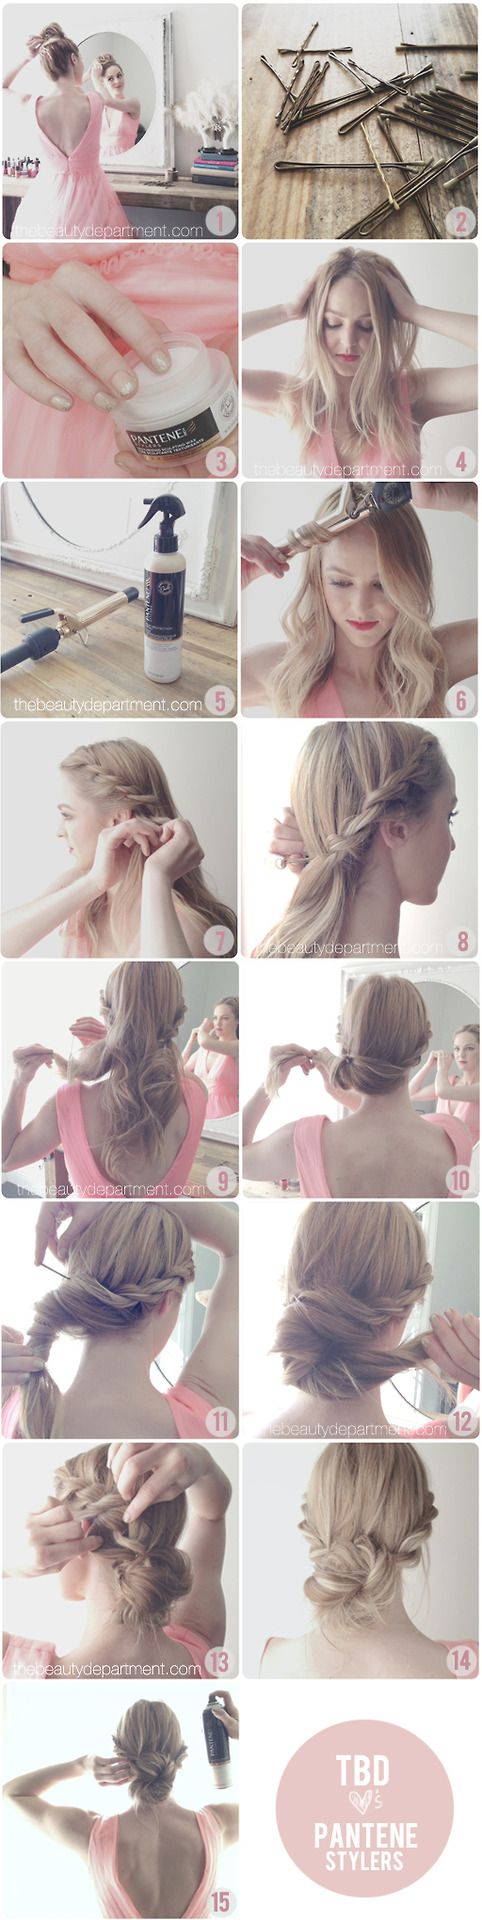 modcloth: This chignon tutorial from the beauty department is great for prom, wedding, or any other formal event. I love the loose look of this hairstyle, and it's super easy to create! <3 Amy, ModStylist Need styling suggestions, trend tips, or dress details? Ask a ModStylist and your question might be featured on our feed!